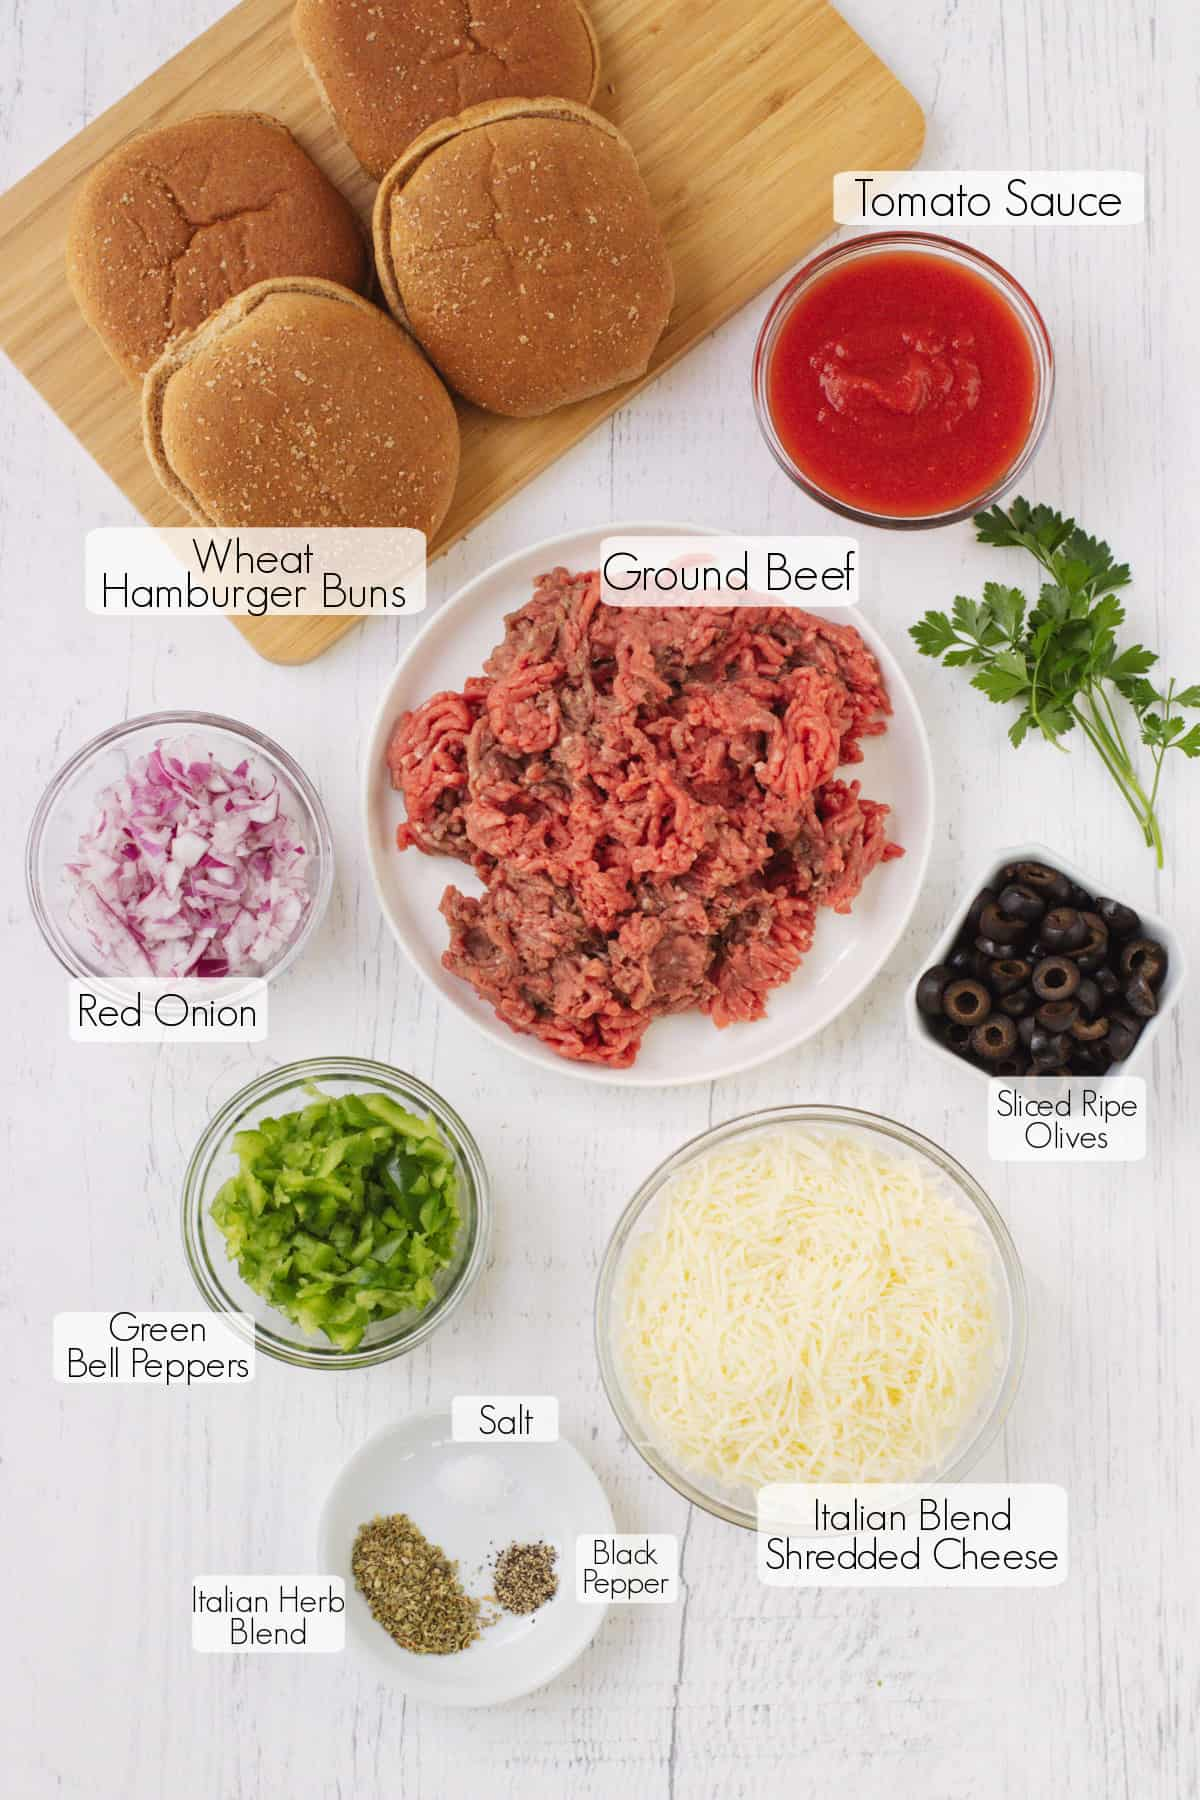 Labeled ingredients to make Italian Sloppy Joes sandwiches.